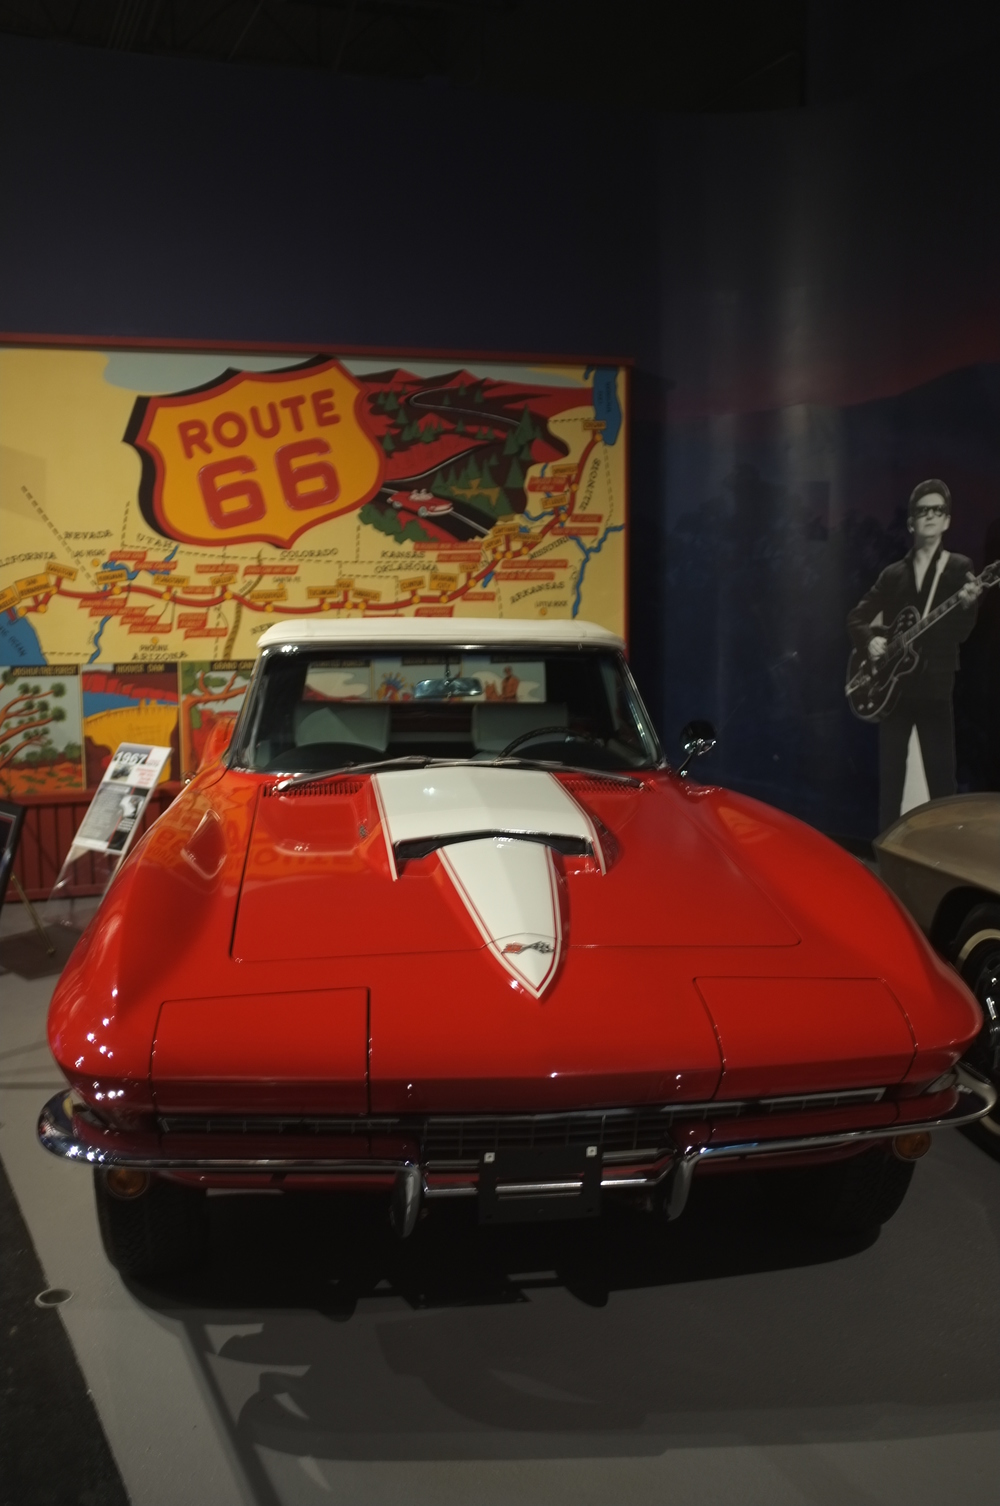 Get your kicks: the Route 66 TV series transformed the Corvette into an icon.